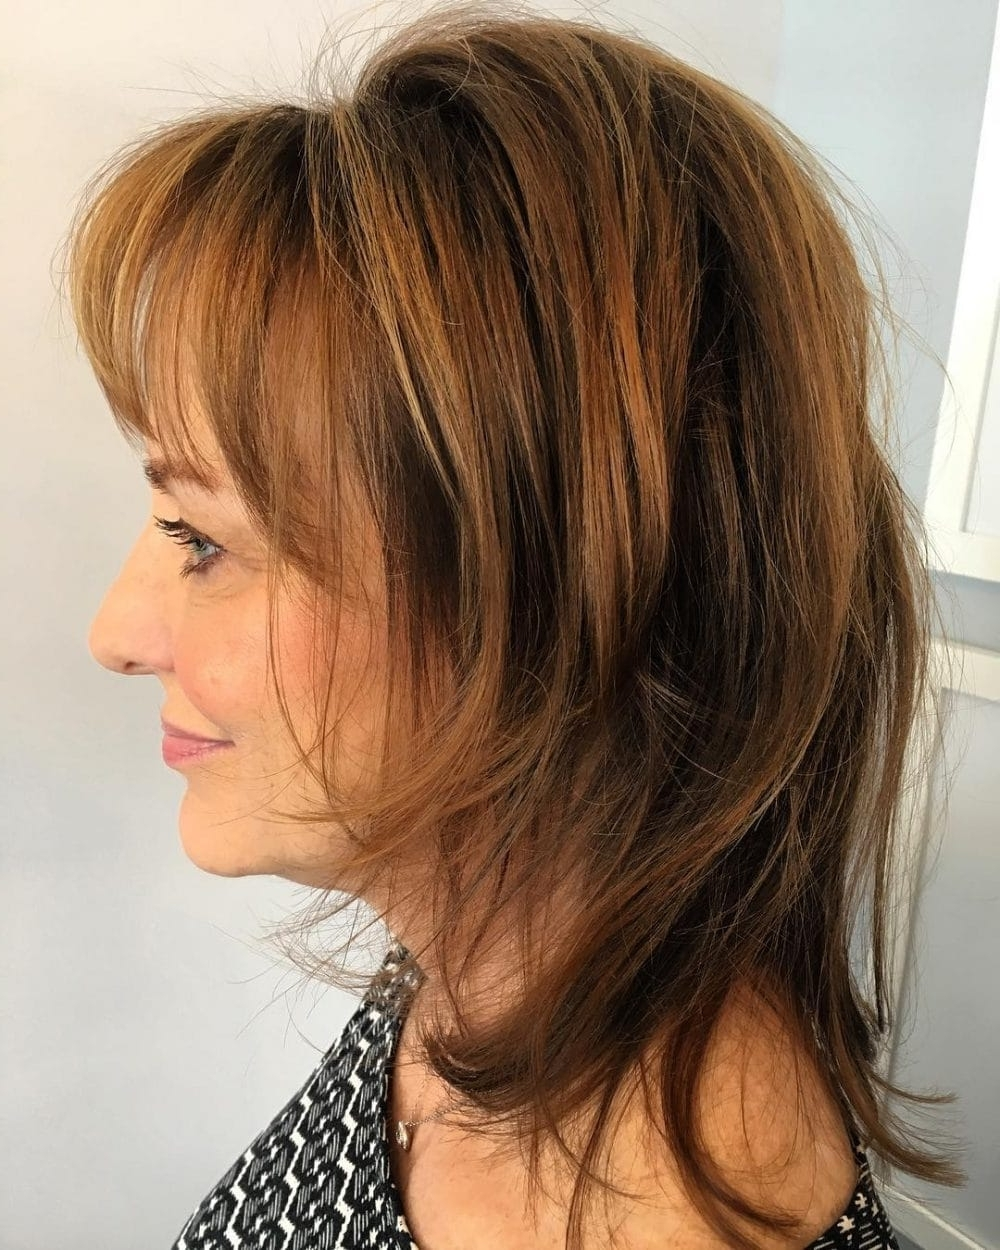 Well Known Shoulder Length Shaggy Hairstyles For Shag Haircuts: 22 Totally Shagadelic Shag Haircuts To Try Today (View 13 of 15)